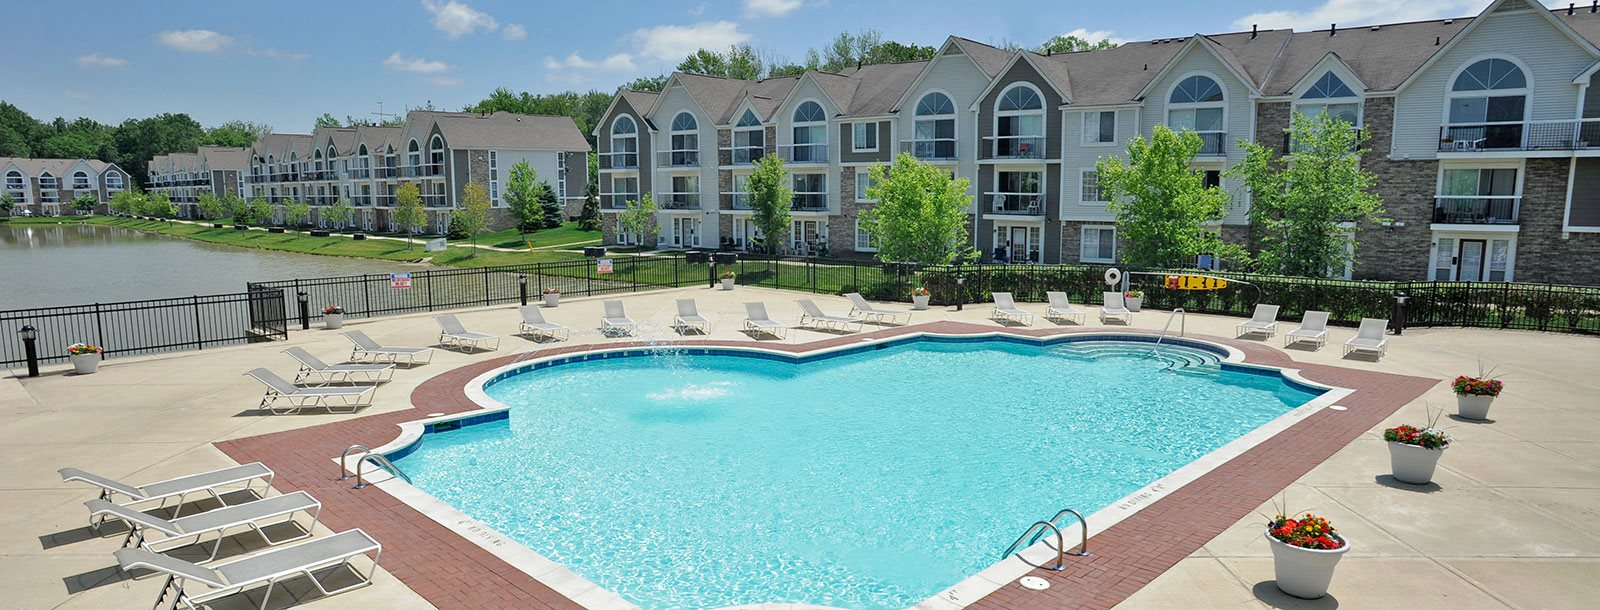 Outdoor swimming pool at Westlake Apartments, Michigan, 48111